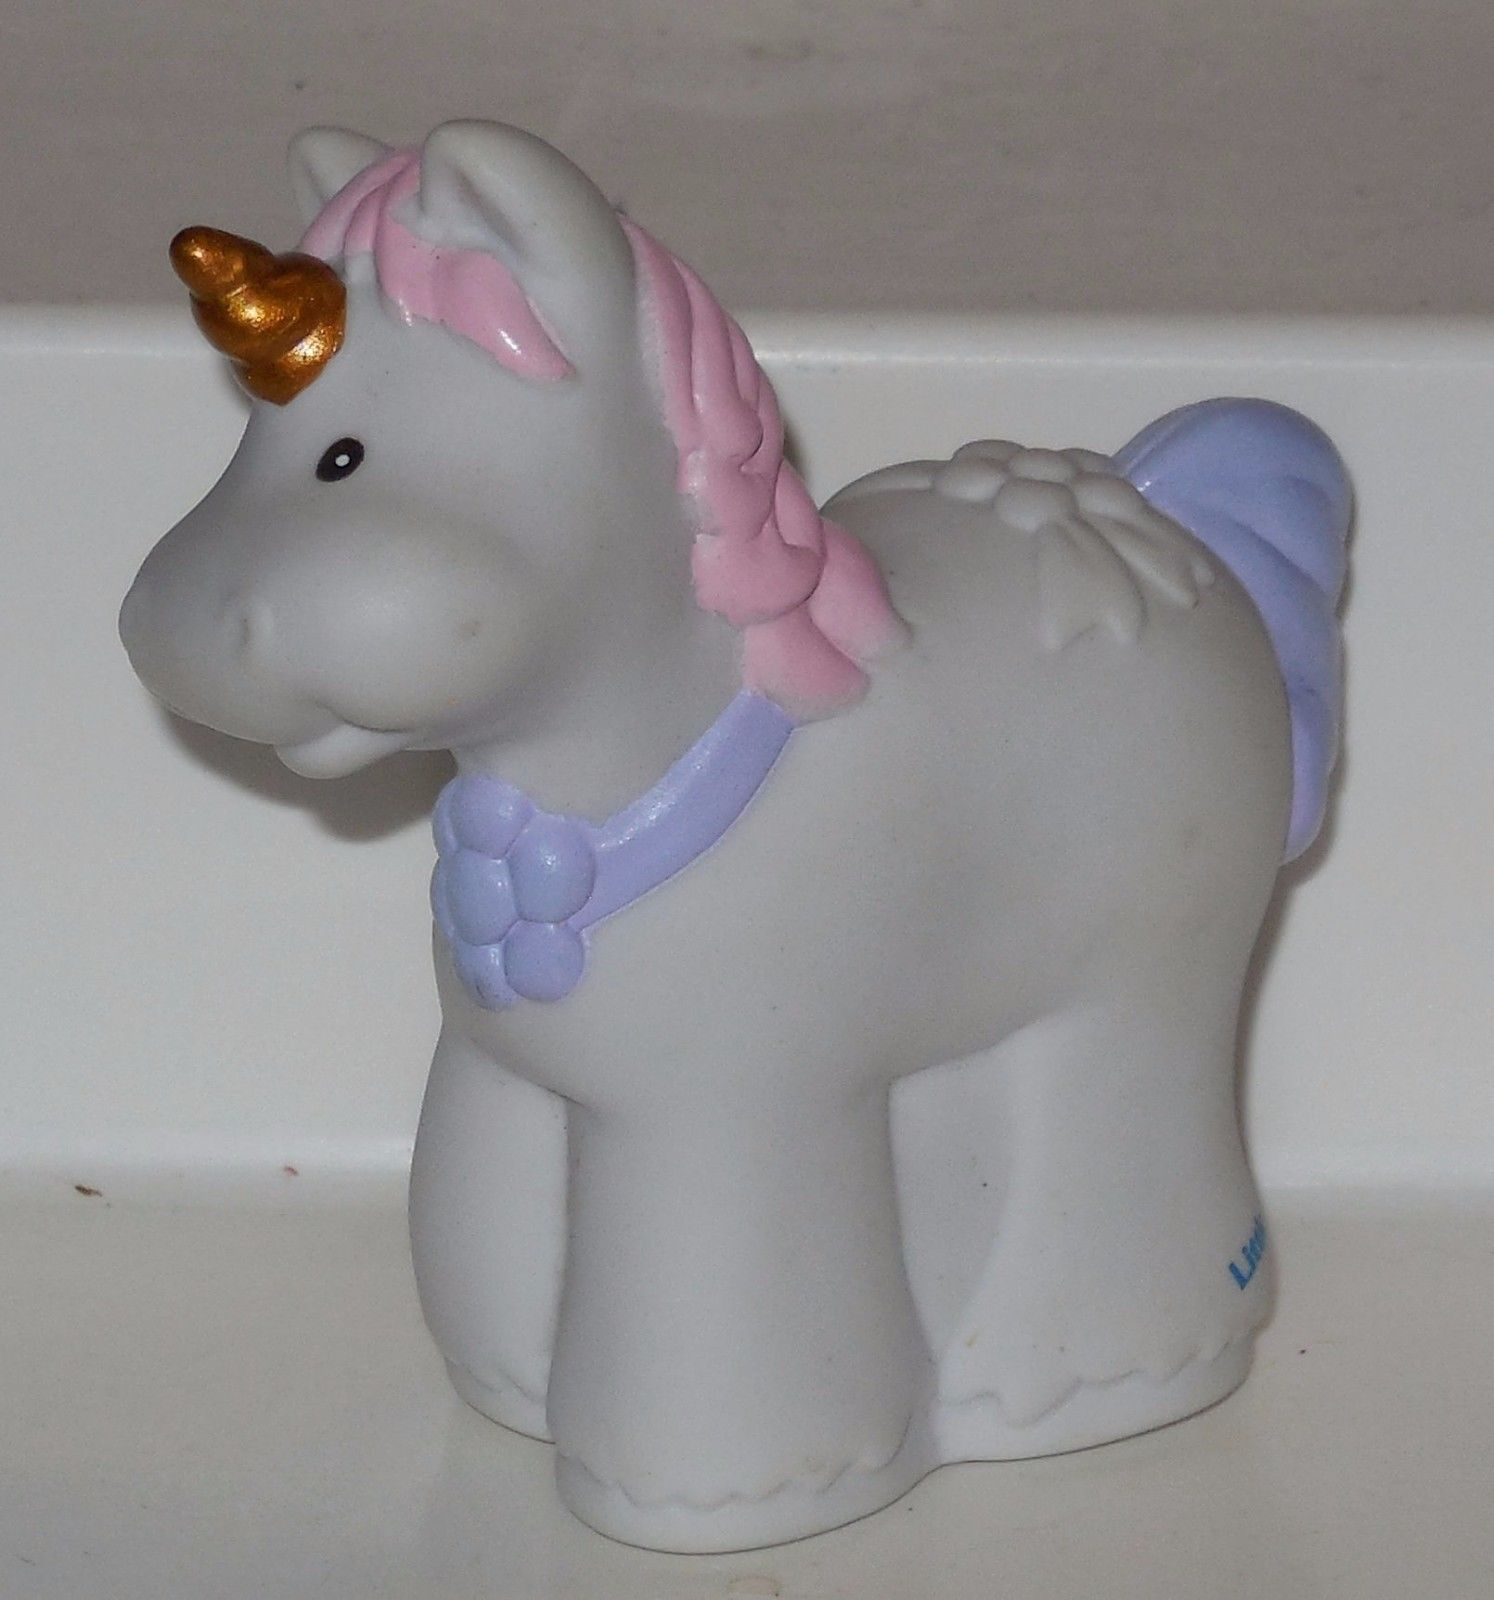 Fisher Price Current Little People Unicorn #2 FPLP Rare VHTF